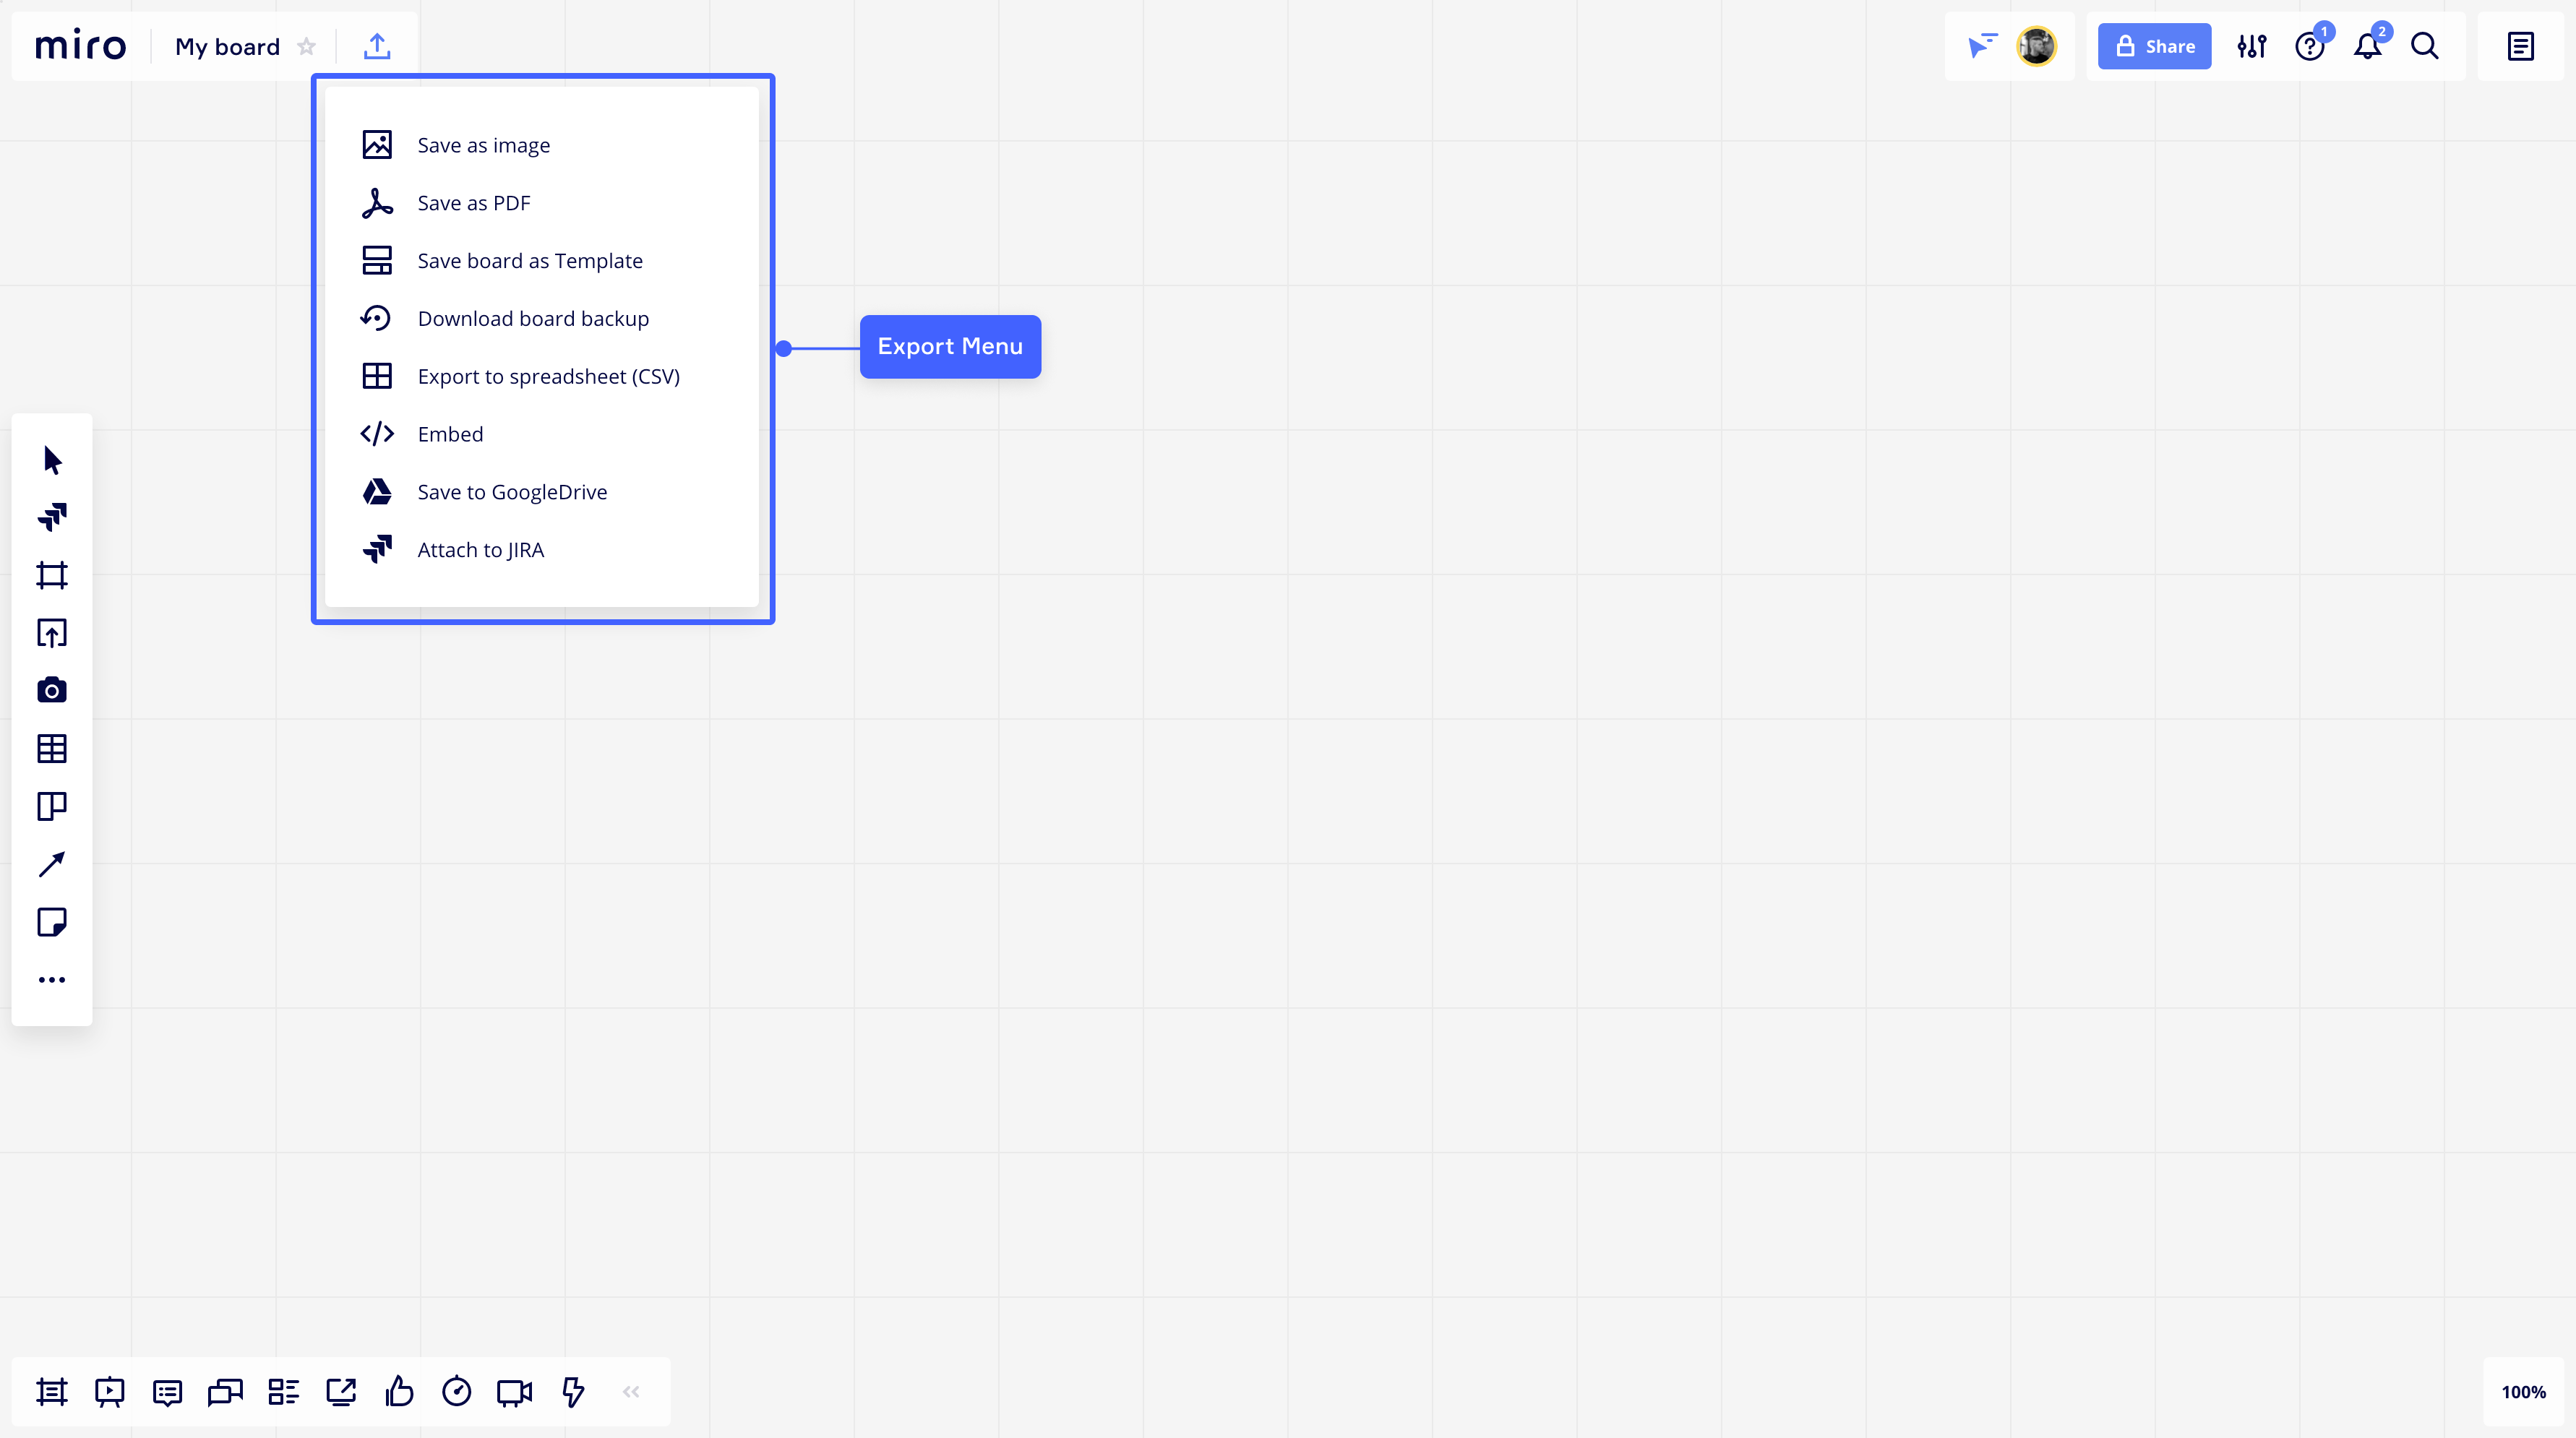 Google Drive is using the ExportMenu extension point to save and export your Miro board to Google Drive.